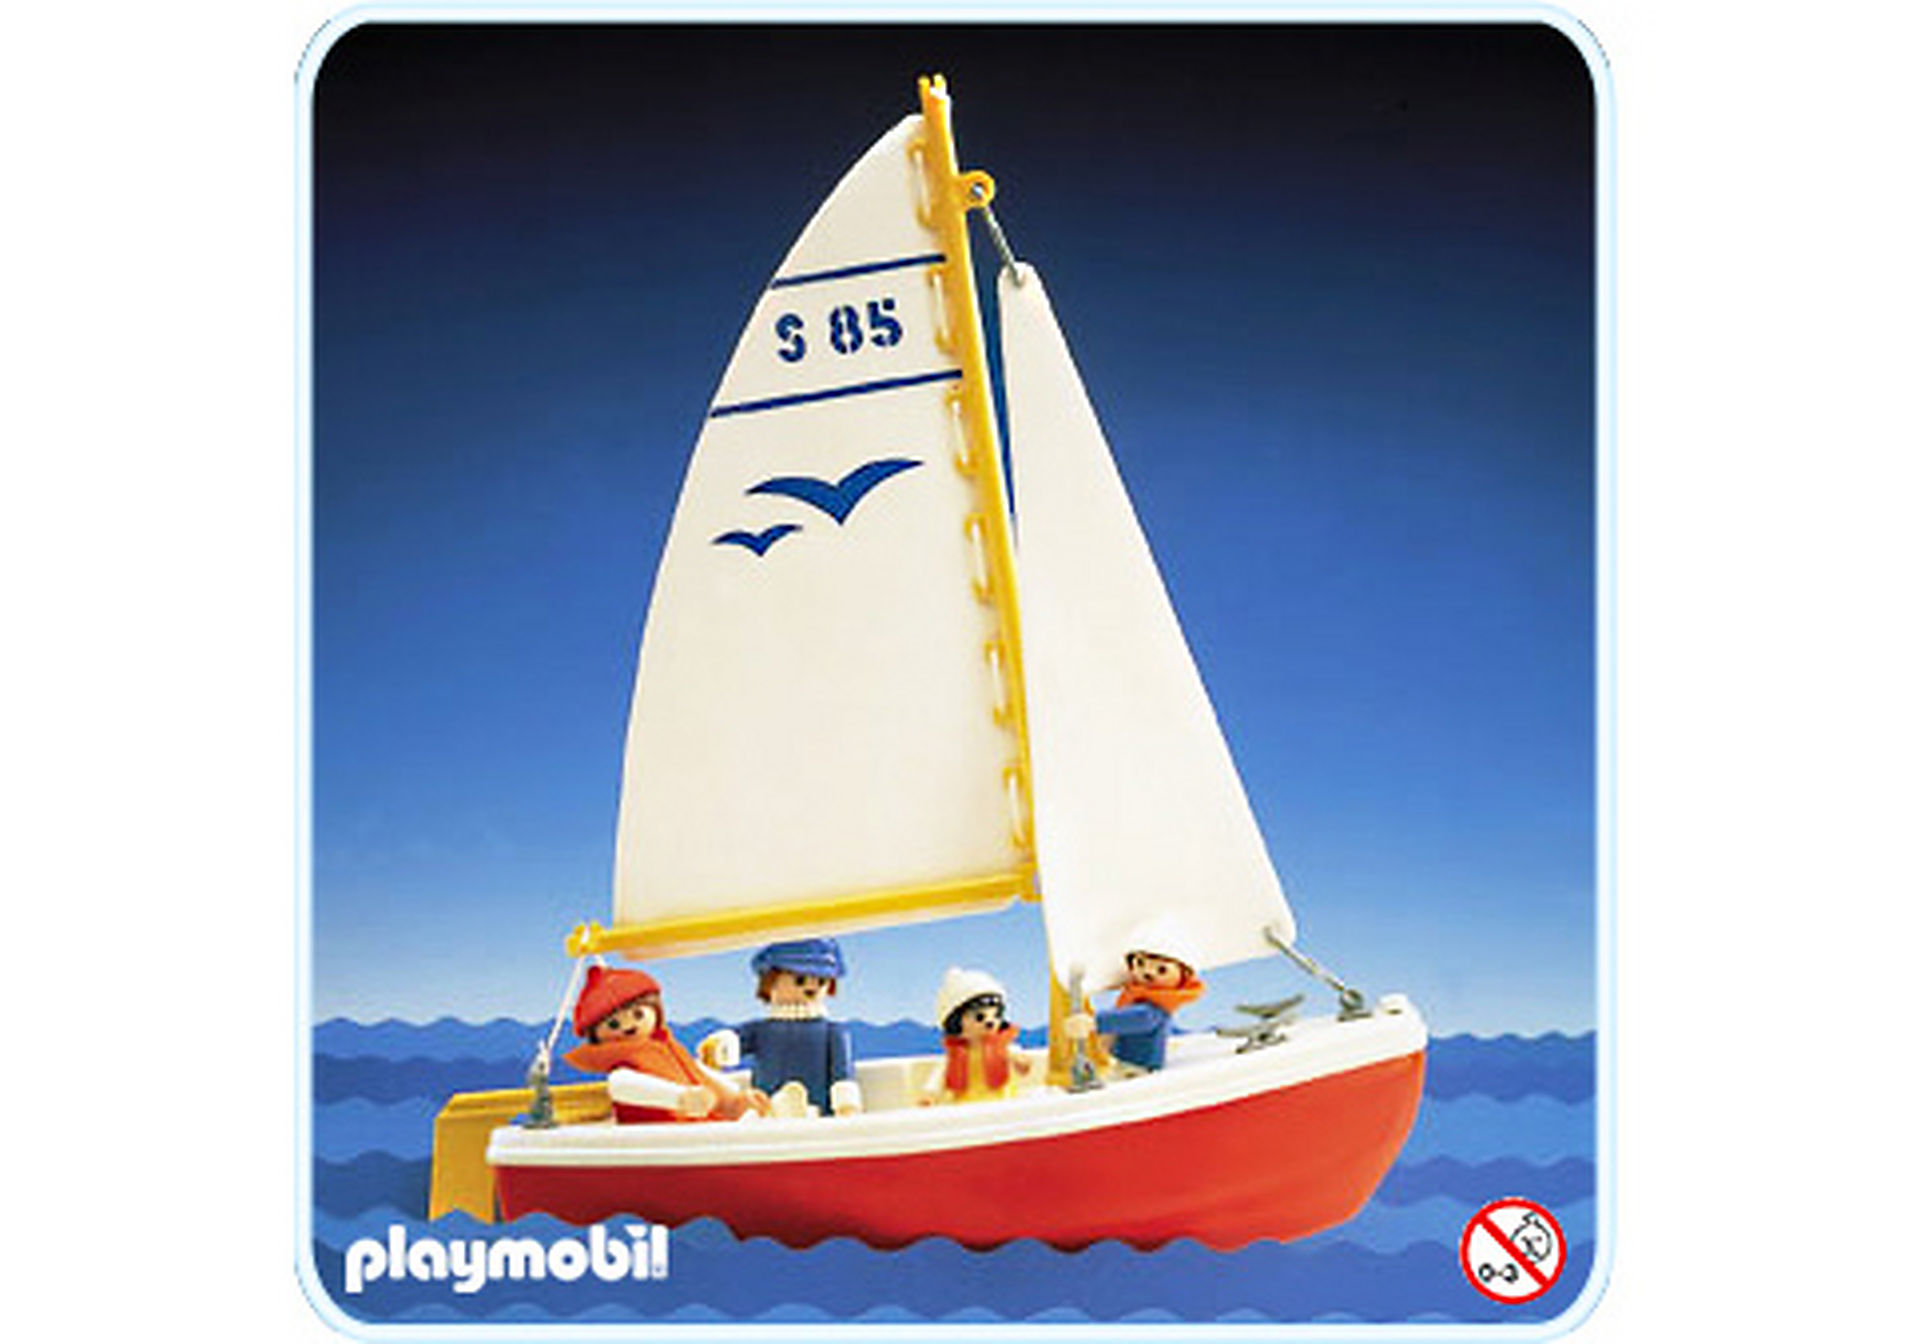 http://media.playmobil.com/i/playmobil/3138-B_product_detail/Voilier